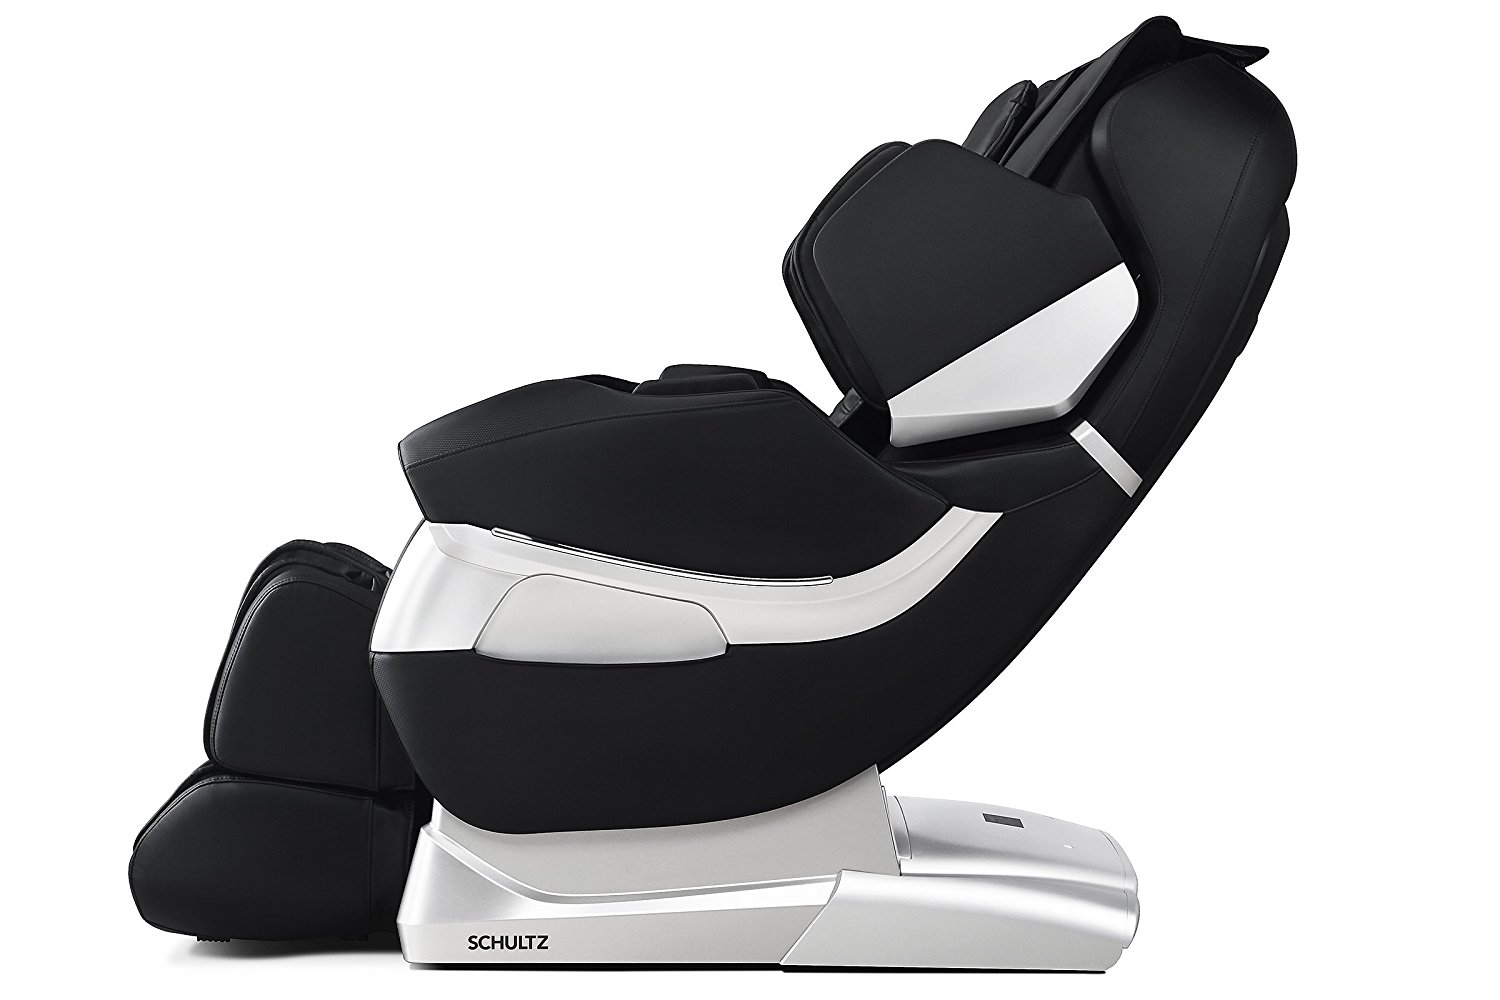 Schultz Zycrapulse Massage Chair reviews